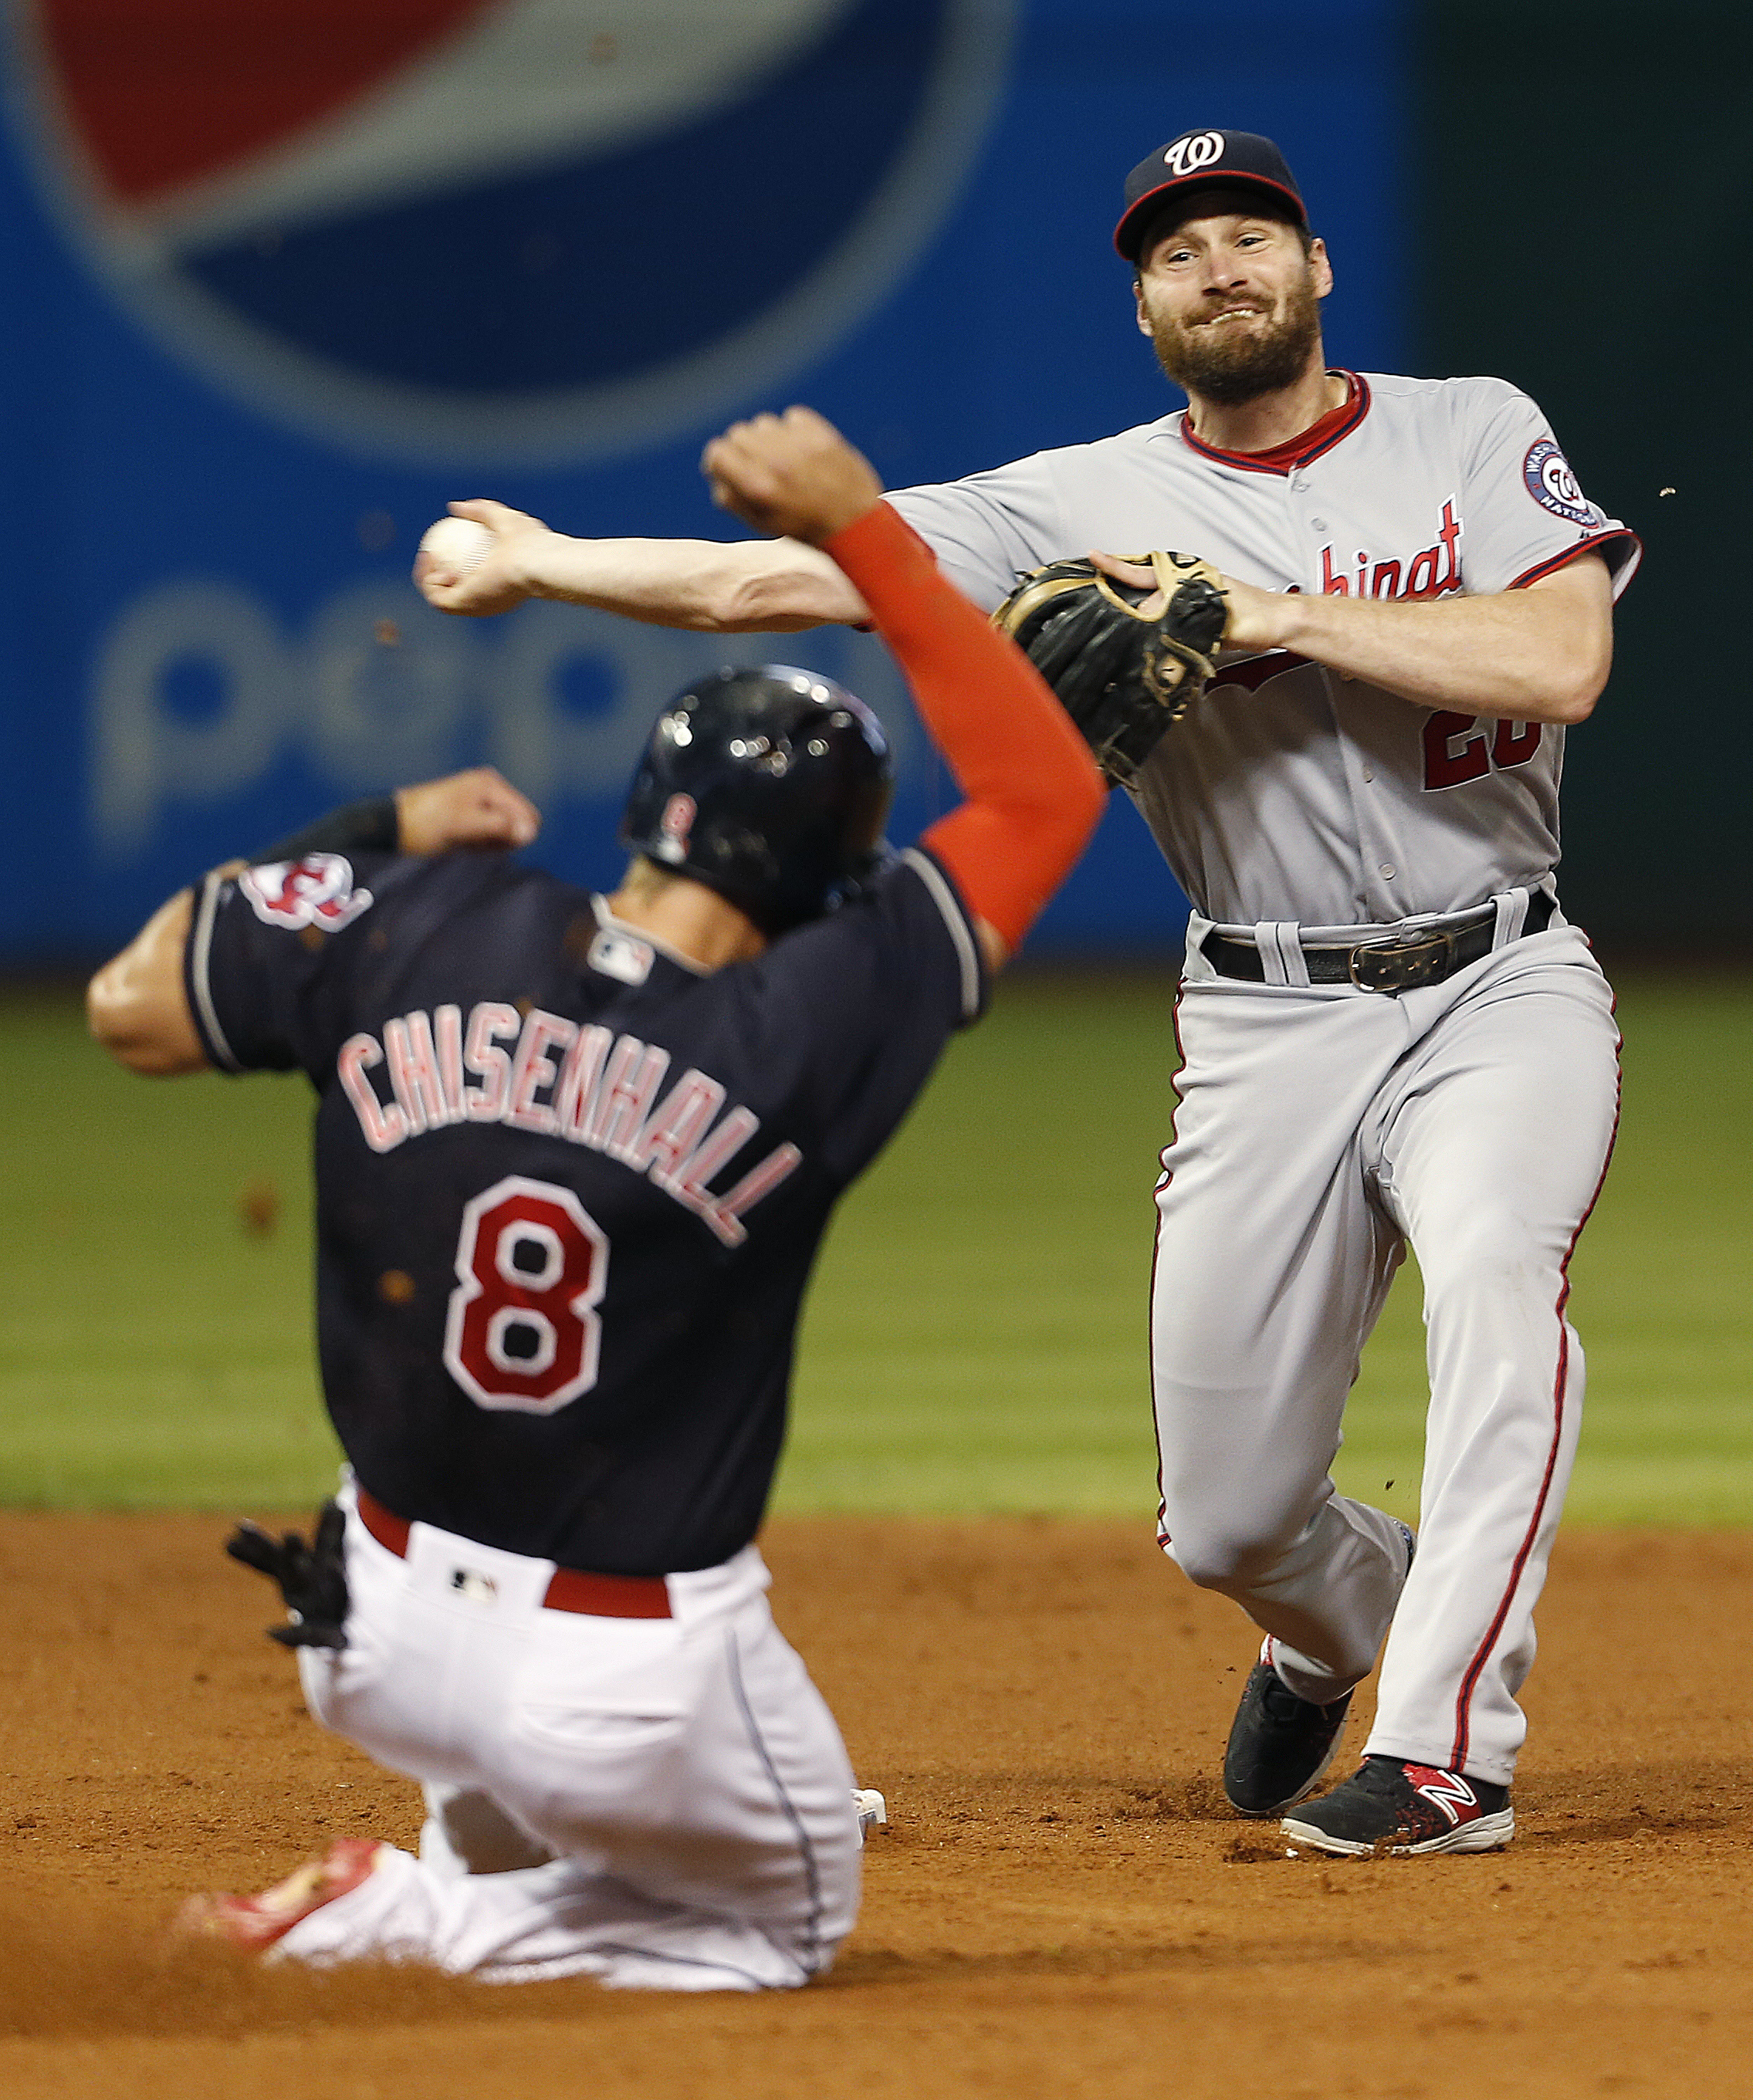 Washington Nationals' Daniel Murphy (20) throws to first after forcing out Cleveland Indians' Lonnie Chisenhall (8) at second base during the seventh inning of a baseball game Tuesday, July 26, 2016, in Cleveland. Rajai Davis was out at first. (AP Photo/R